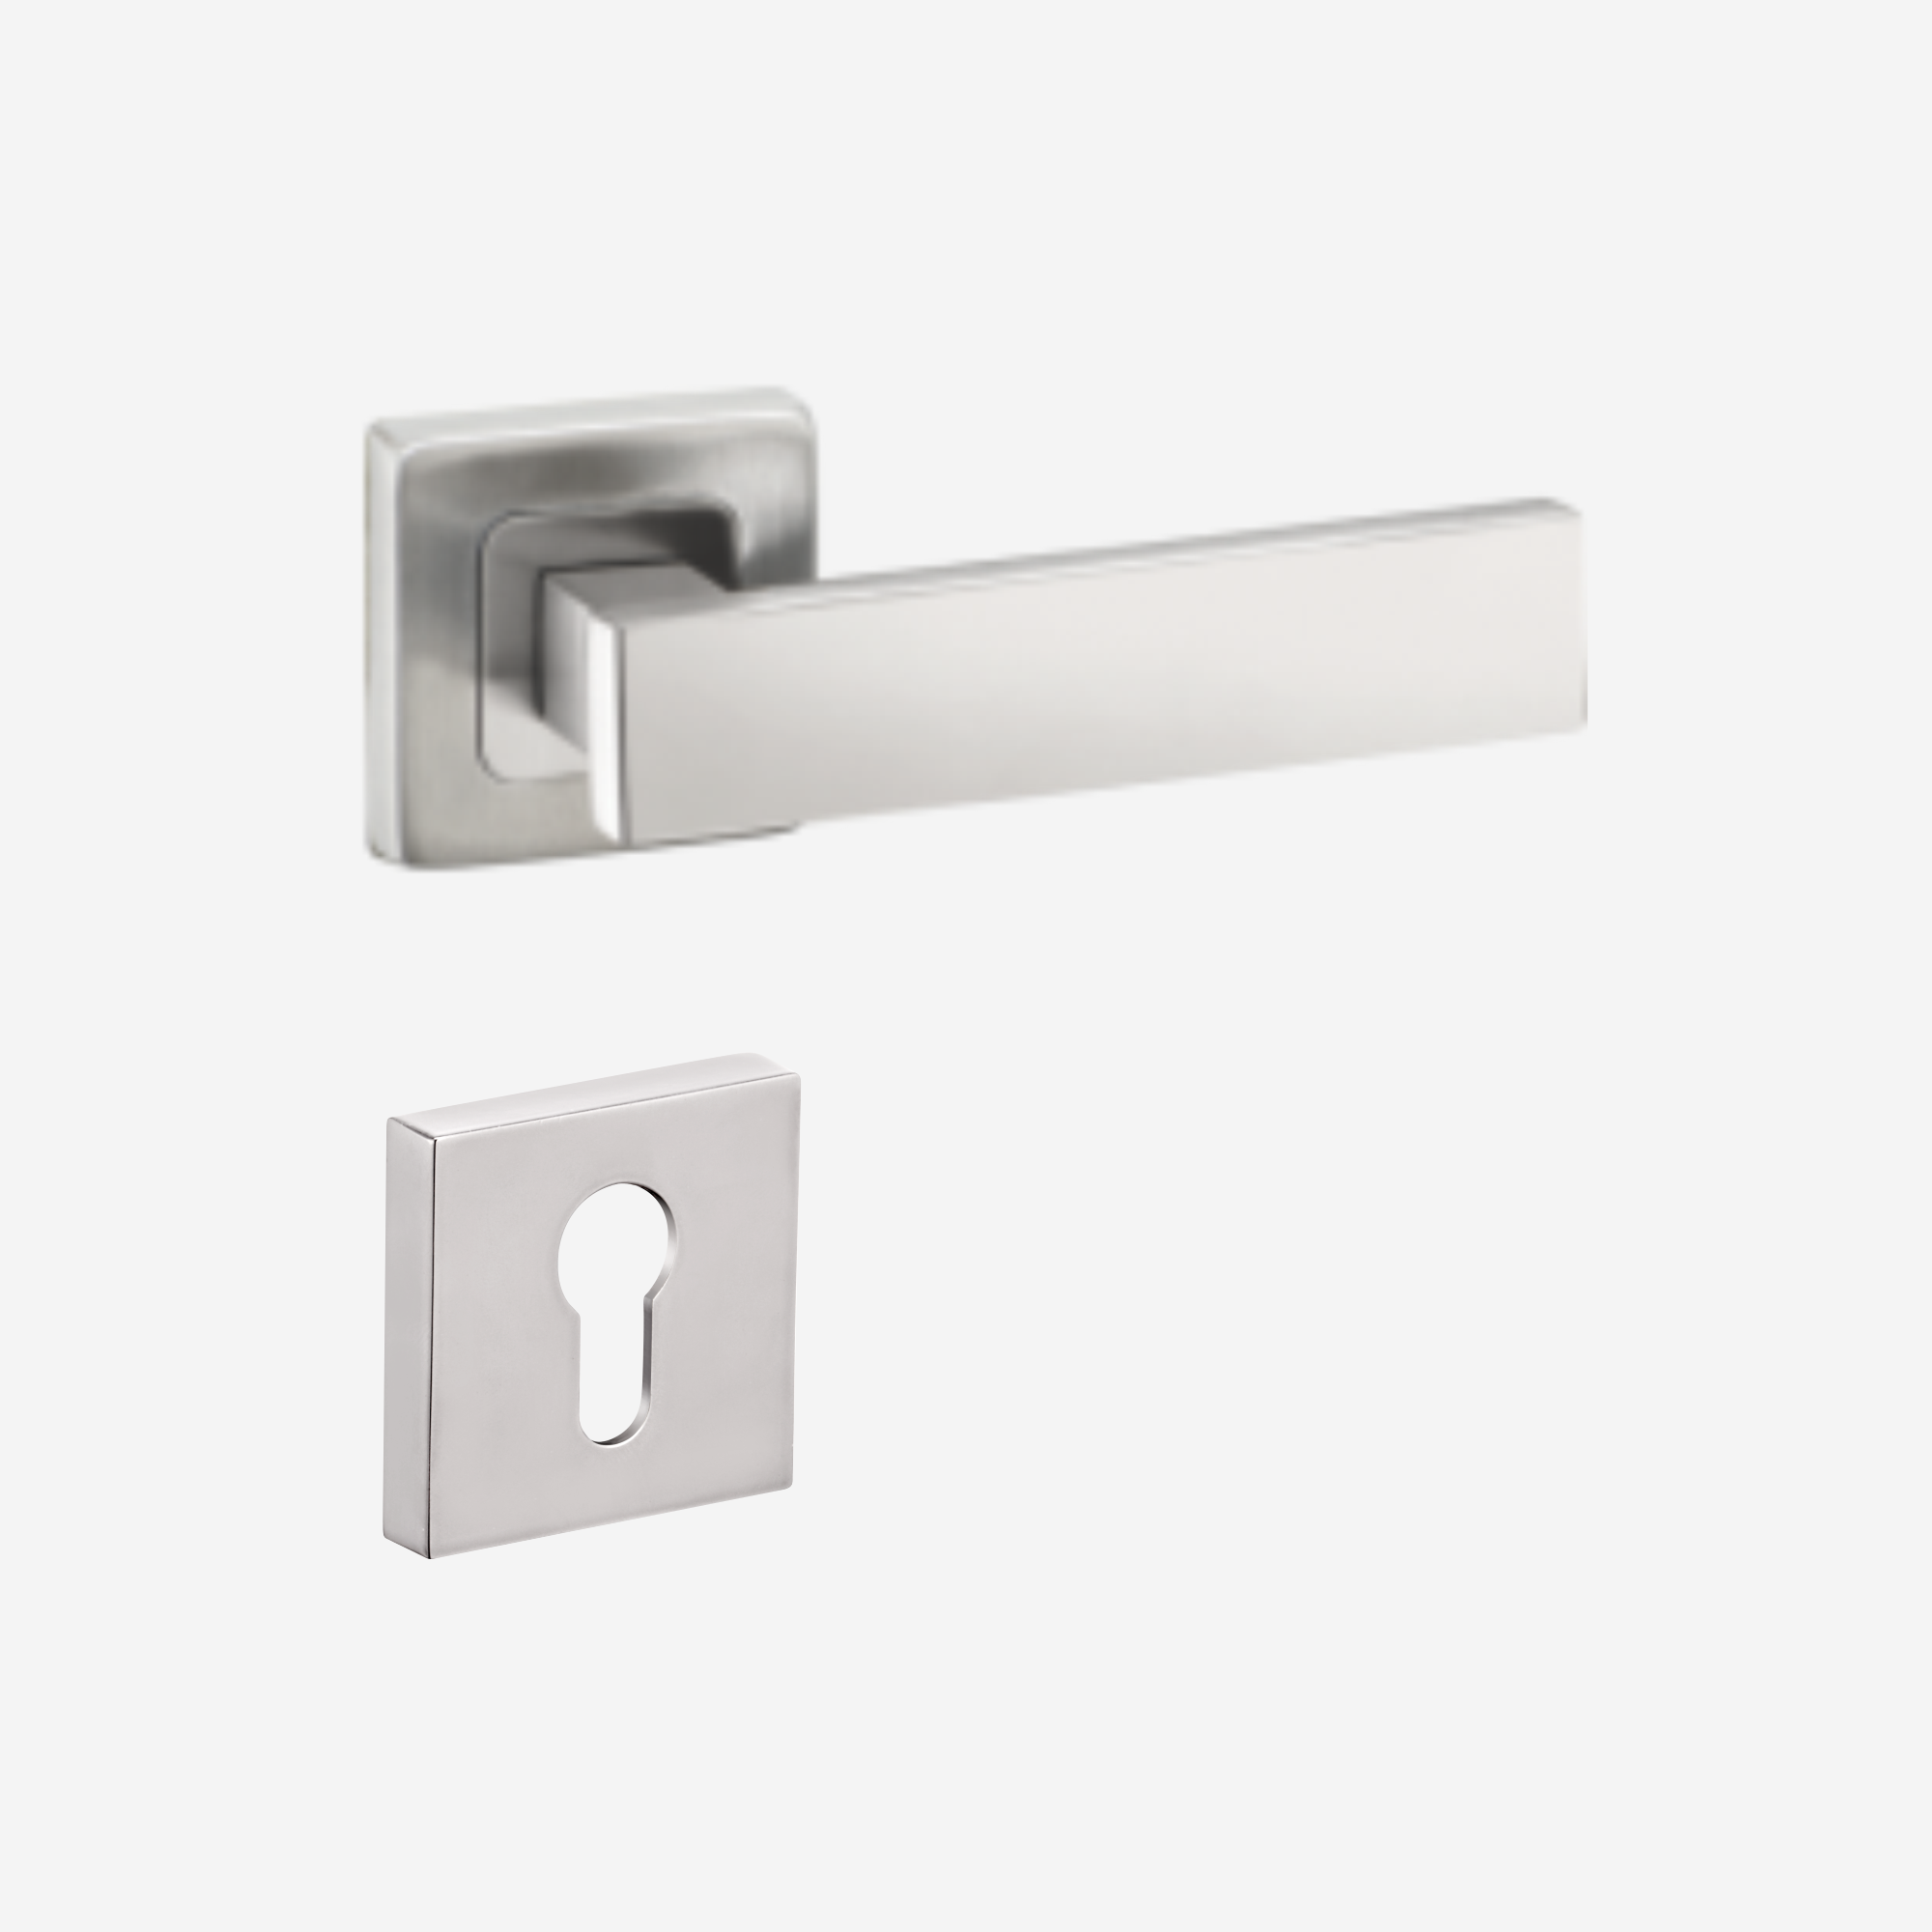 Dorset Lever handle for doDorset Lever handle for doors with lock _ cylinder - PR OR (SS)ors with lock & cylinder - MY OR